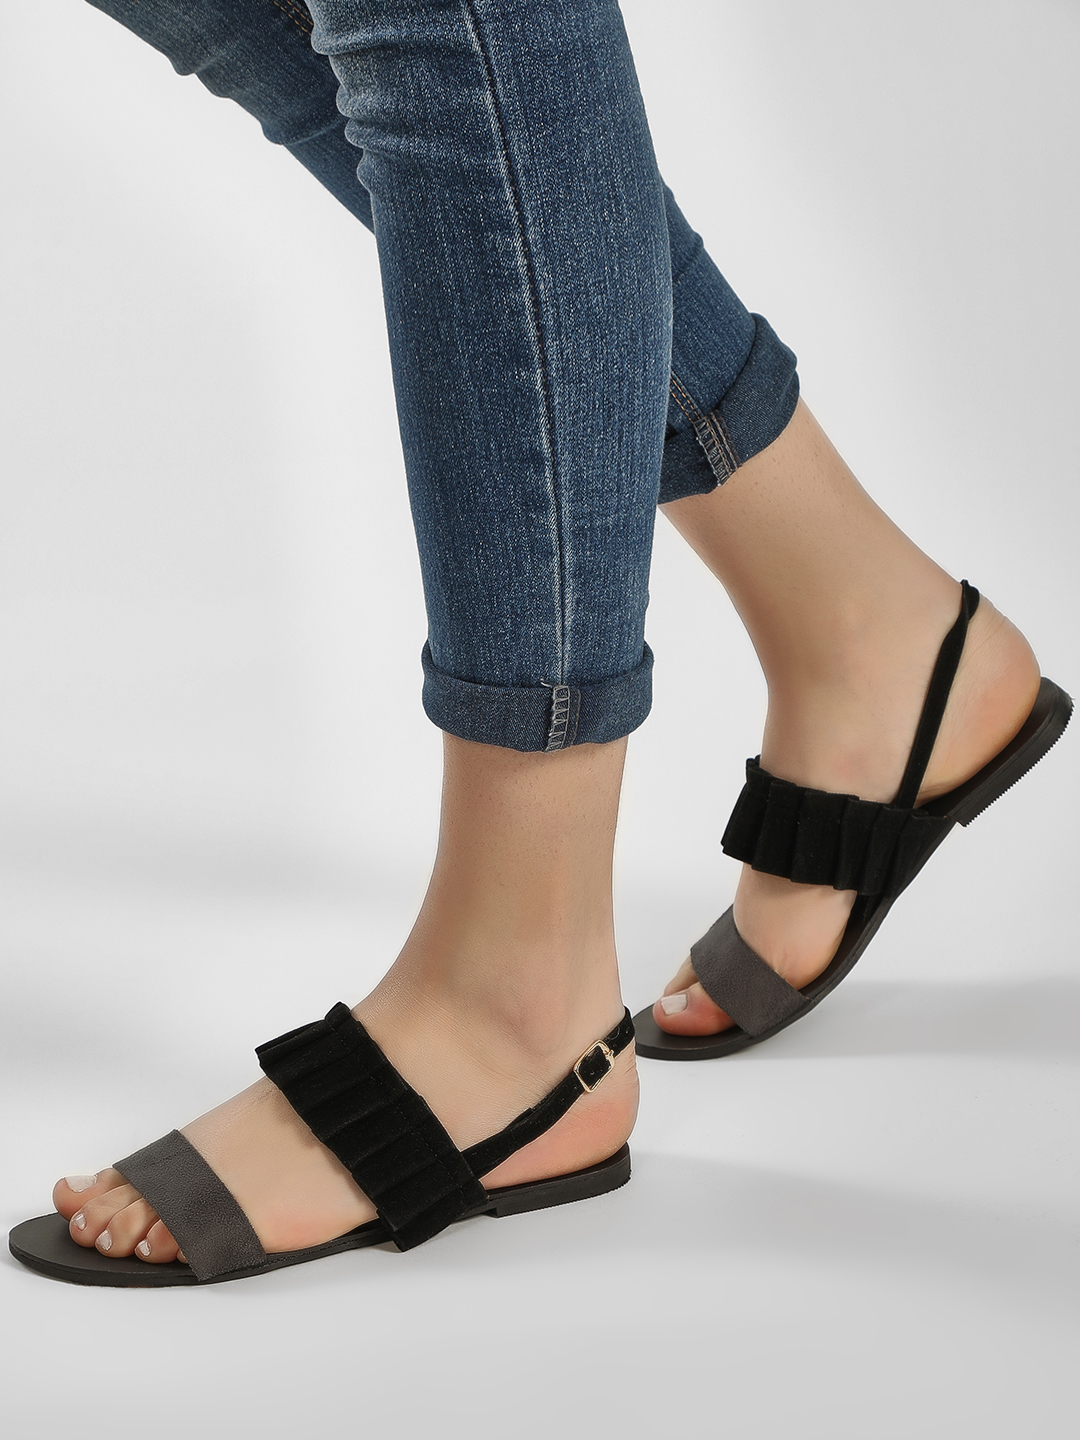 CAi Black/Grey color block ruffle strap sandals 1